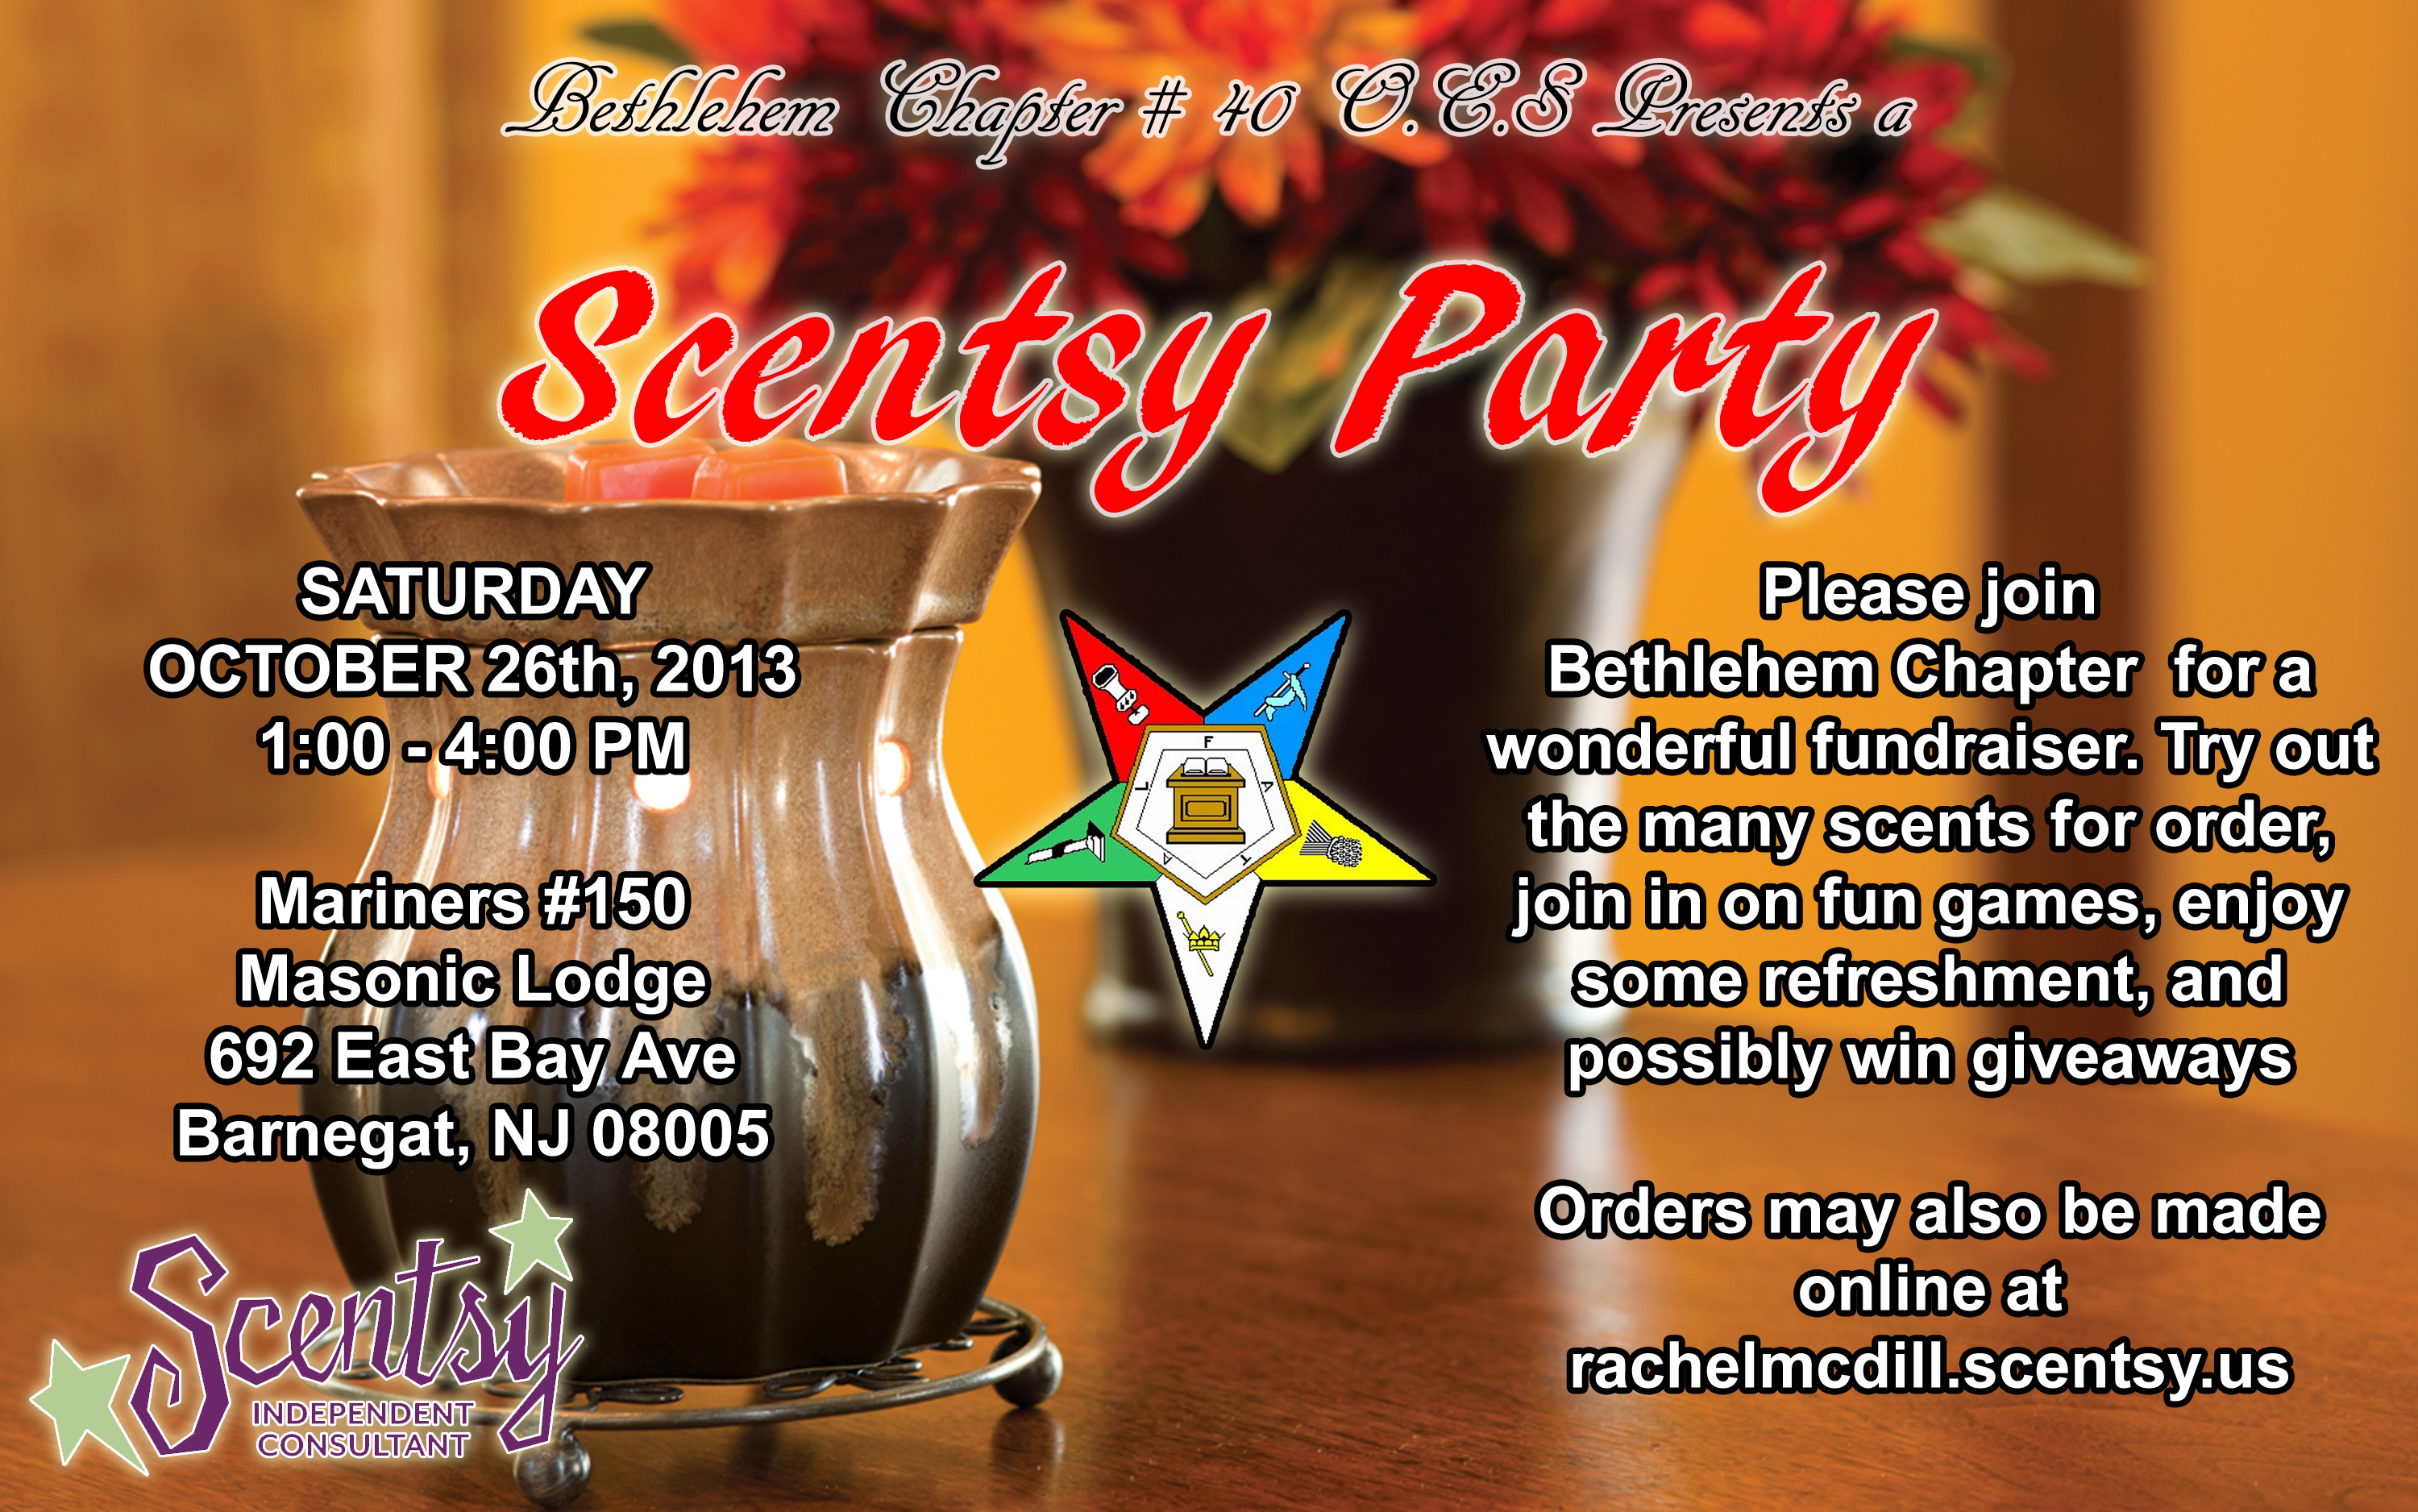 October 2013 Mariners Lodge 150 Barnegat NJ – Scentsy Party Invitation